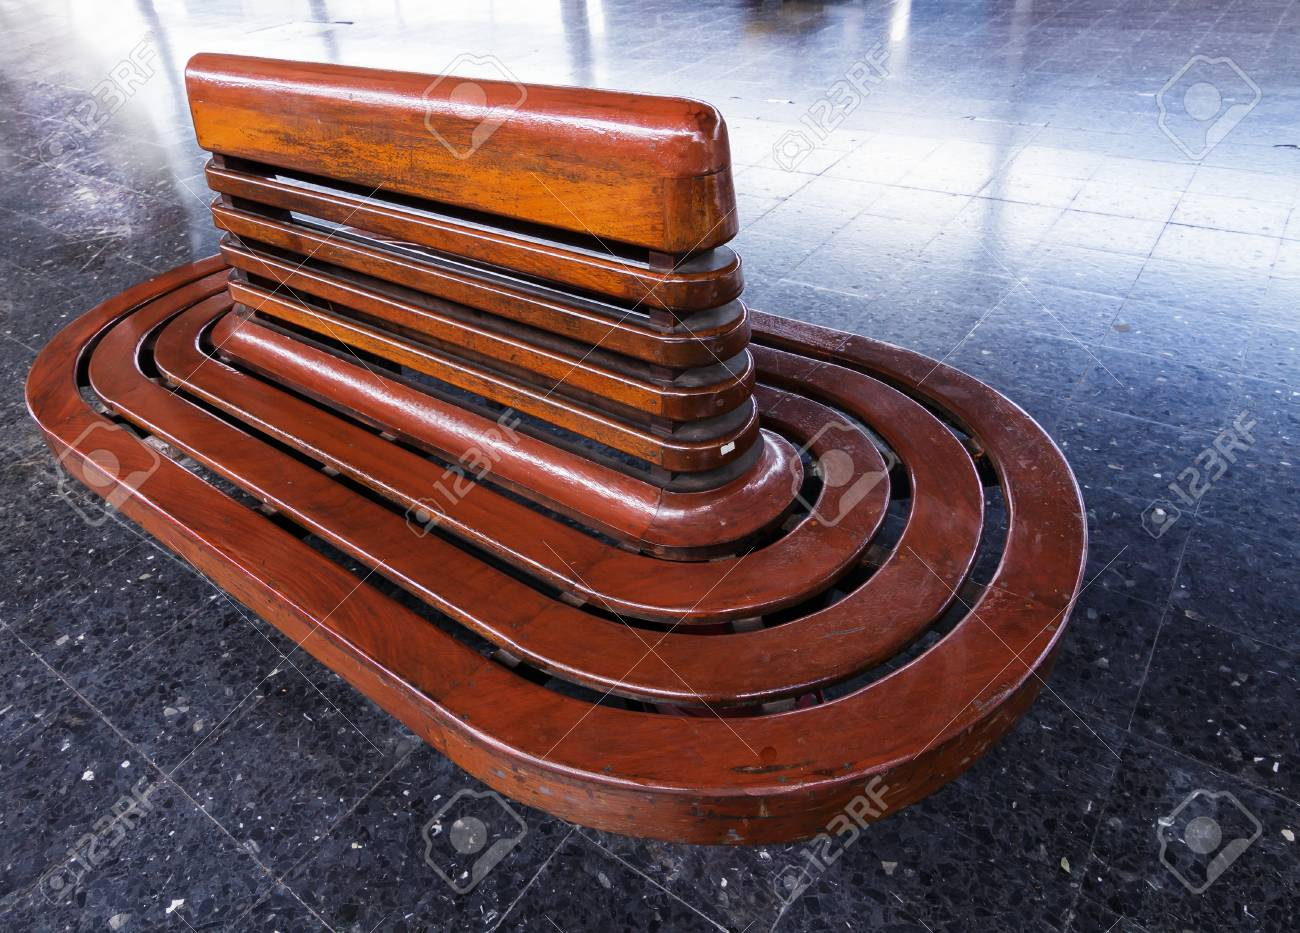 Vintage Wooden Bench At Railway Platform The Old Style Seating